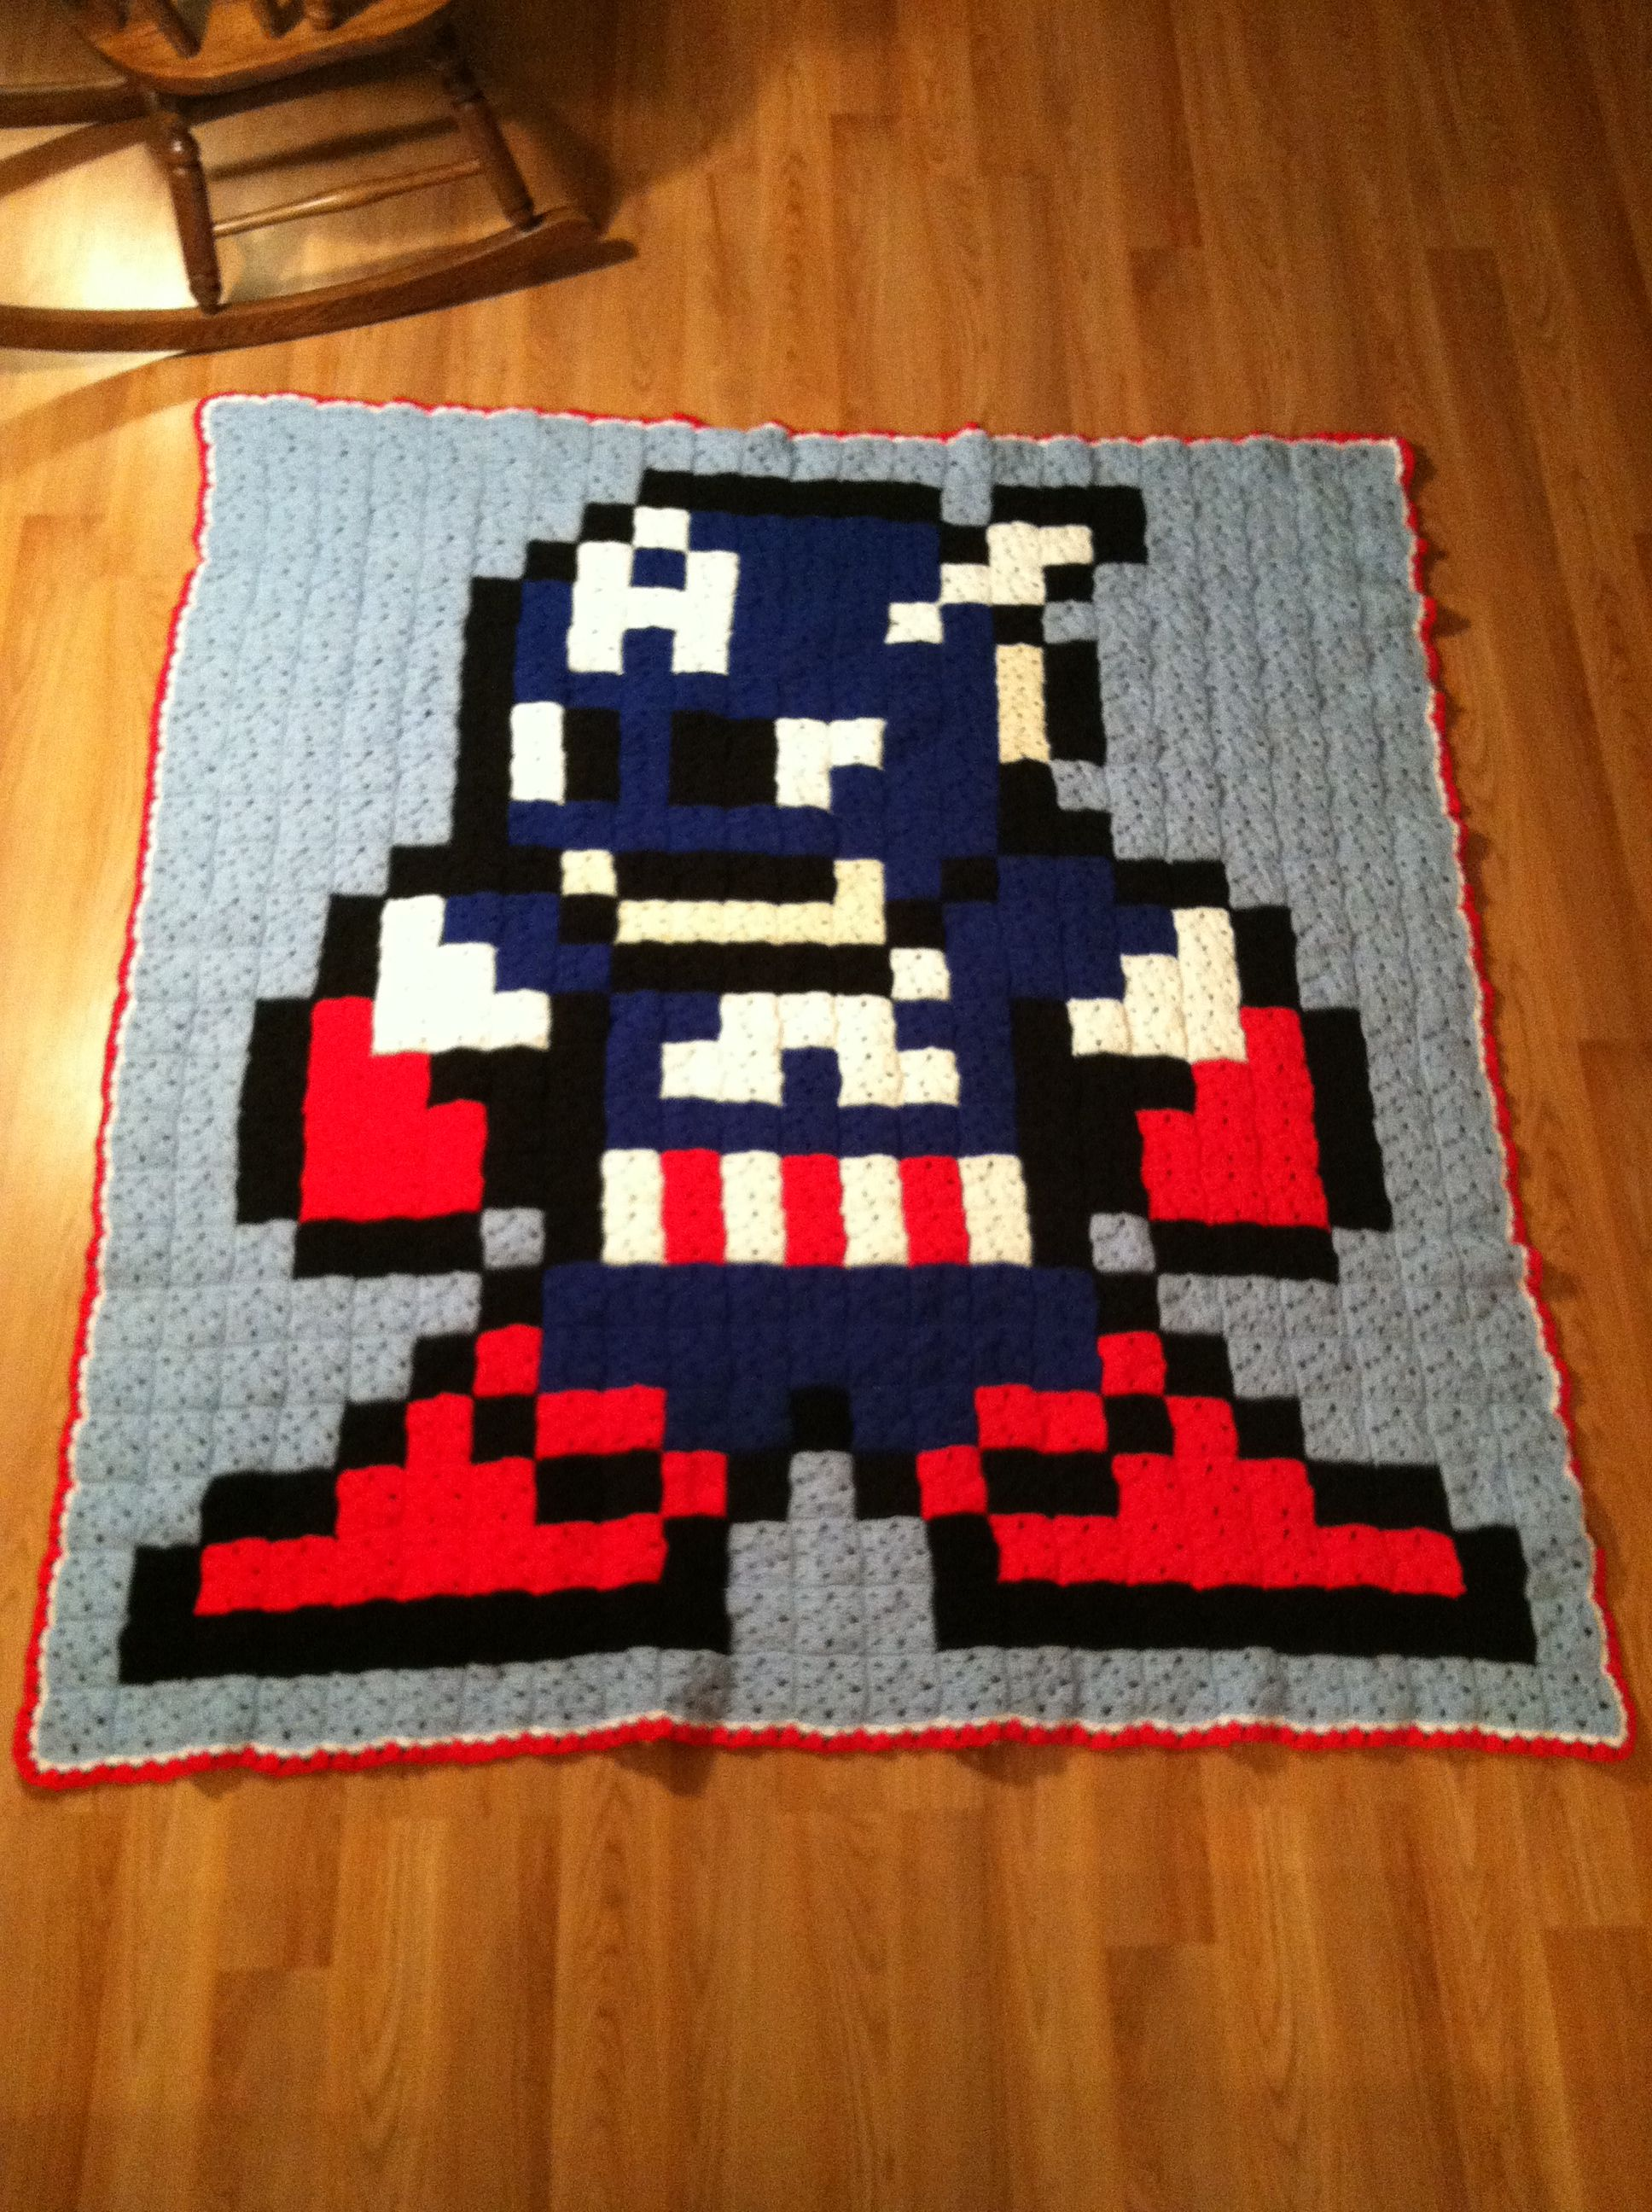 Finally finished my 8 bit captain america crochet blanket marvel finally finished my 8 bit captain america crochet blanket marvel superhero bankloansurffo Images